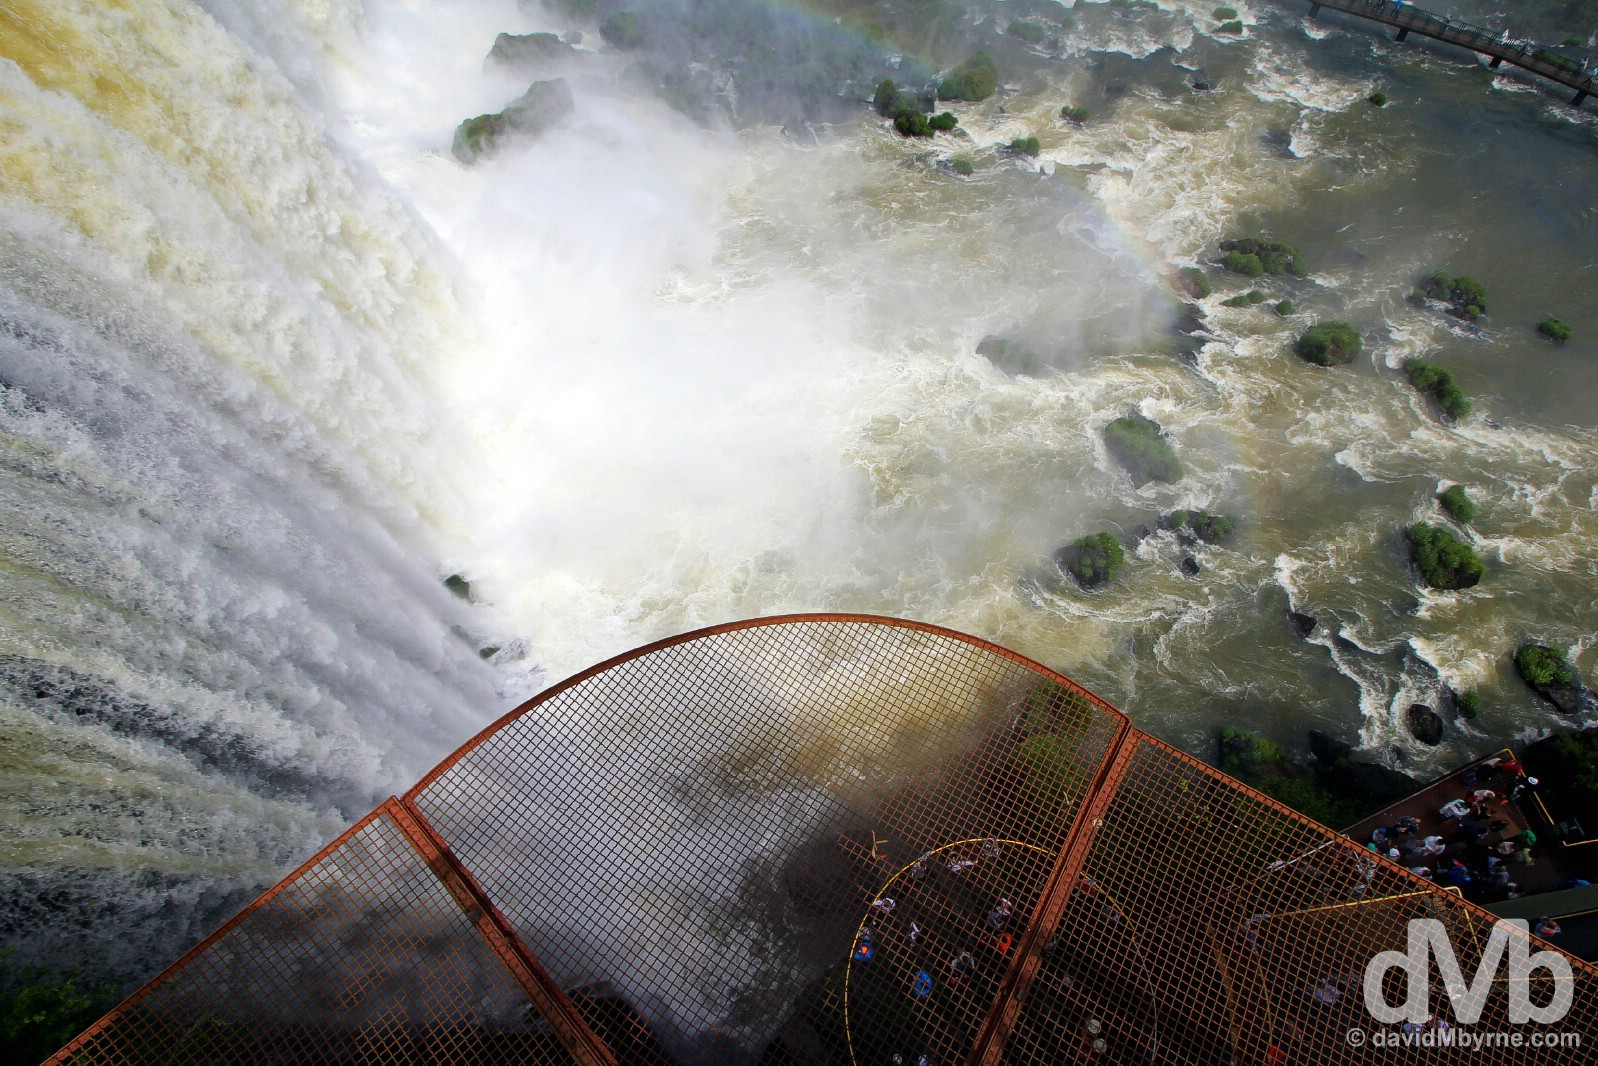 Elevator at Iguazu Falls in Parque Nacional Do Iguacu, Brazil. September 12, 2015.